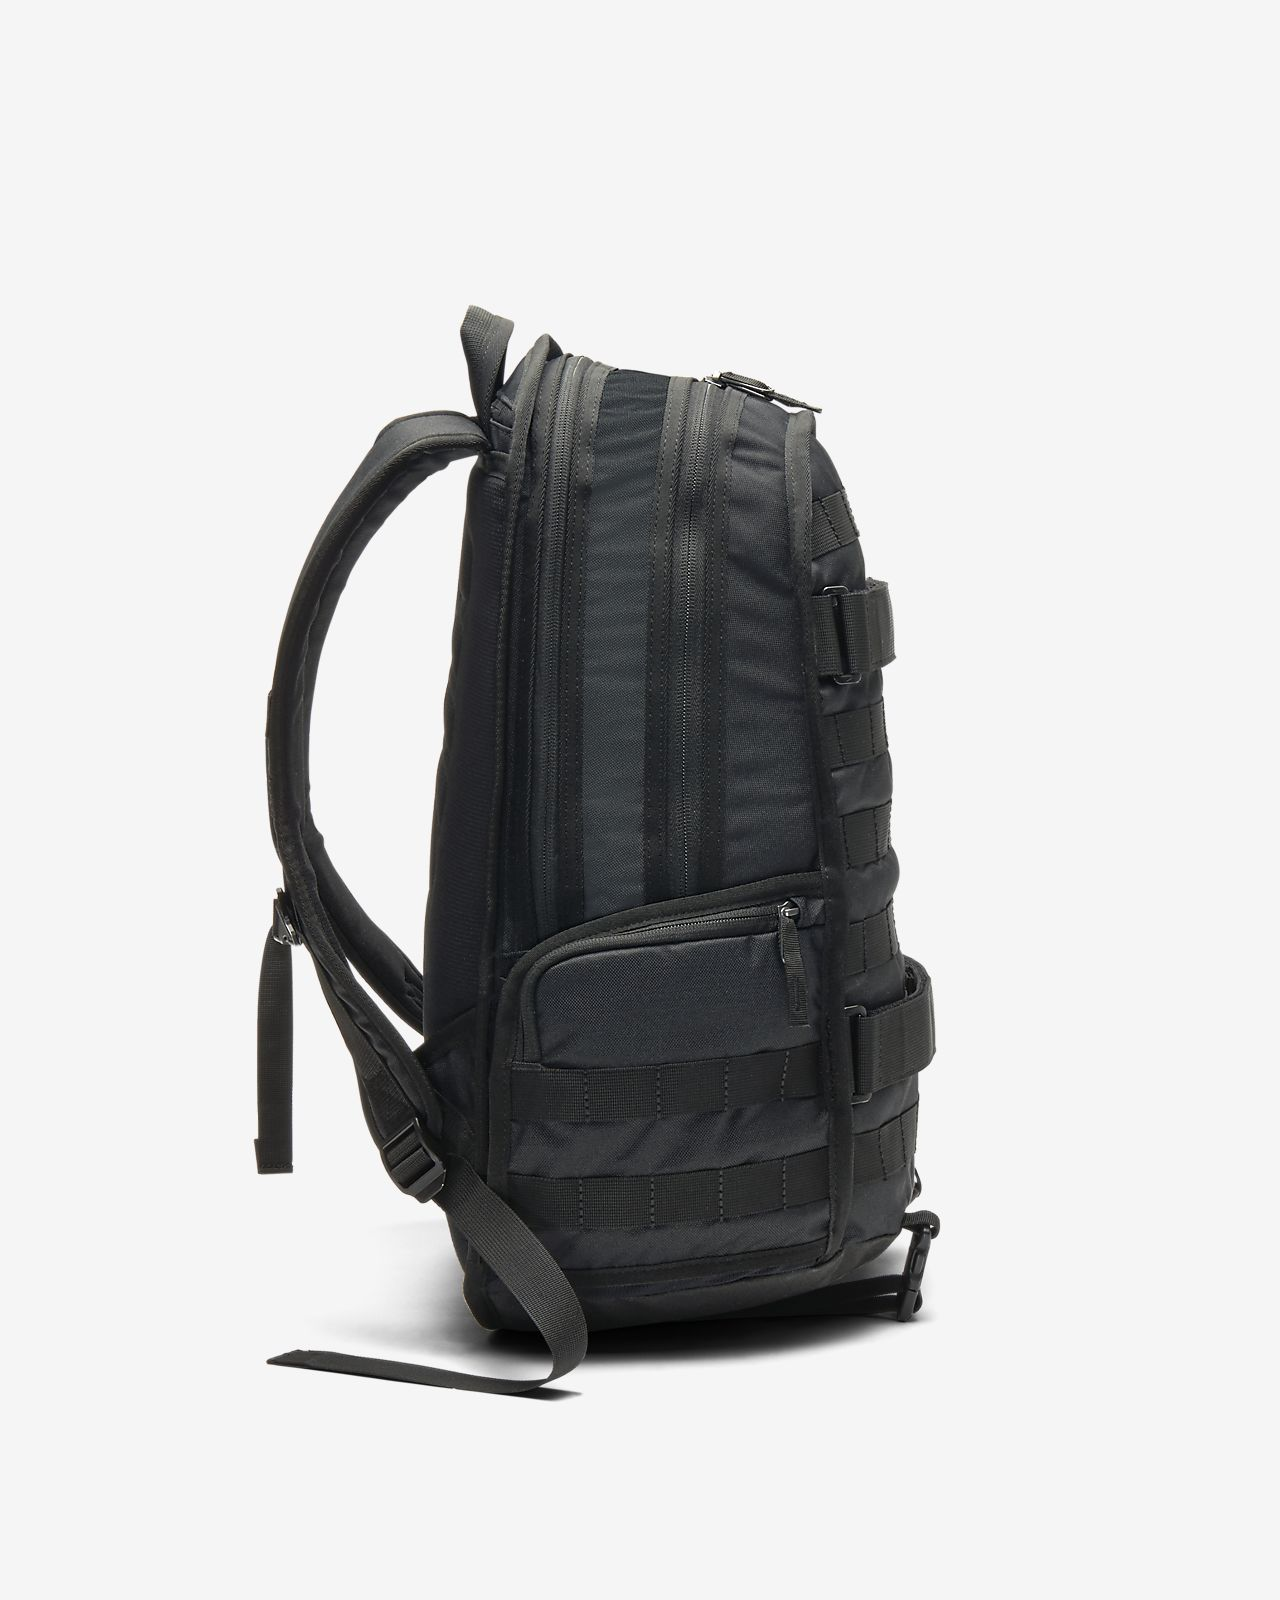 92c2571b5891 Low Resolution Nike SB RPM Skateboarding Backpack Nike SB RPM Skateboarding  Backpack